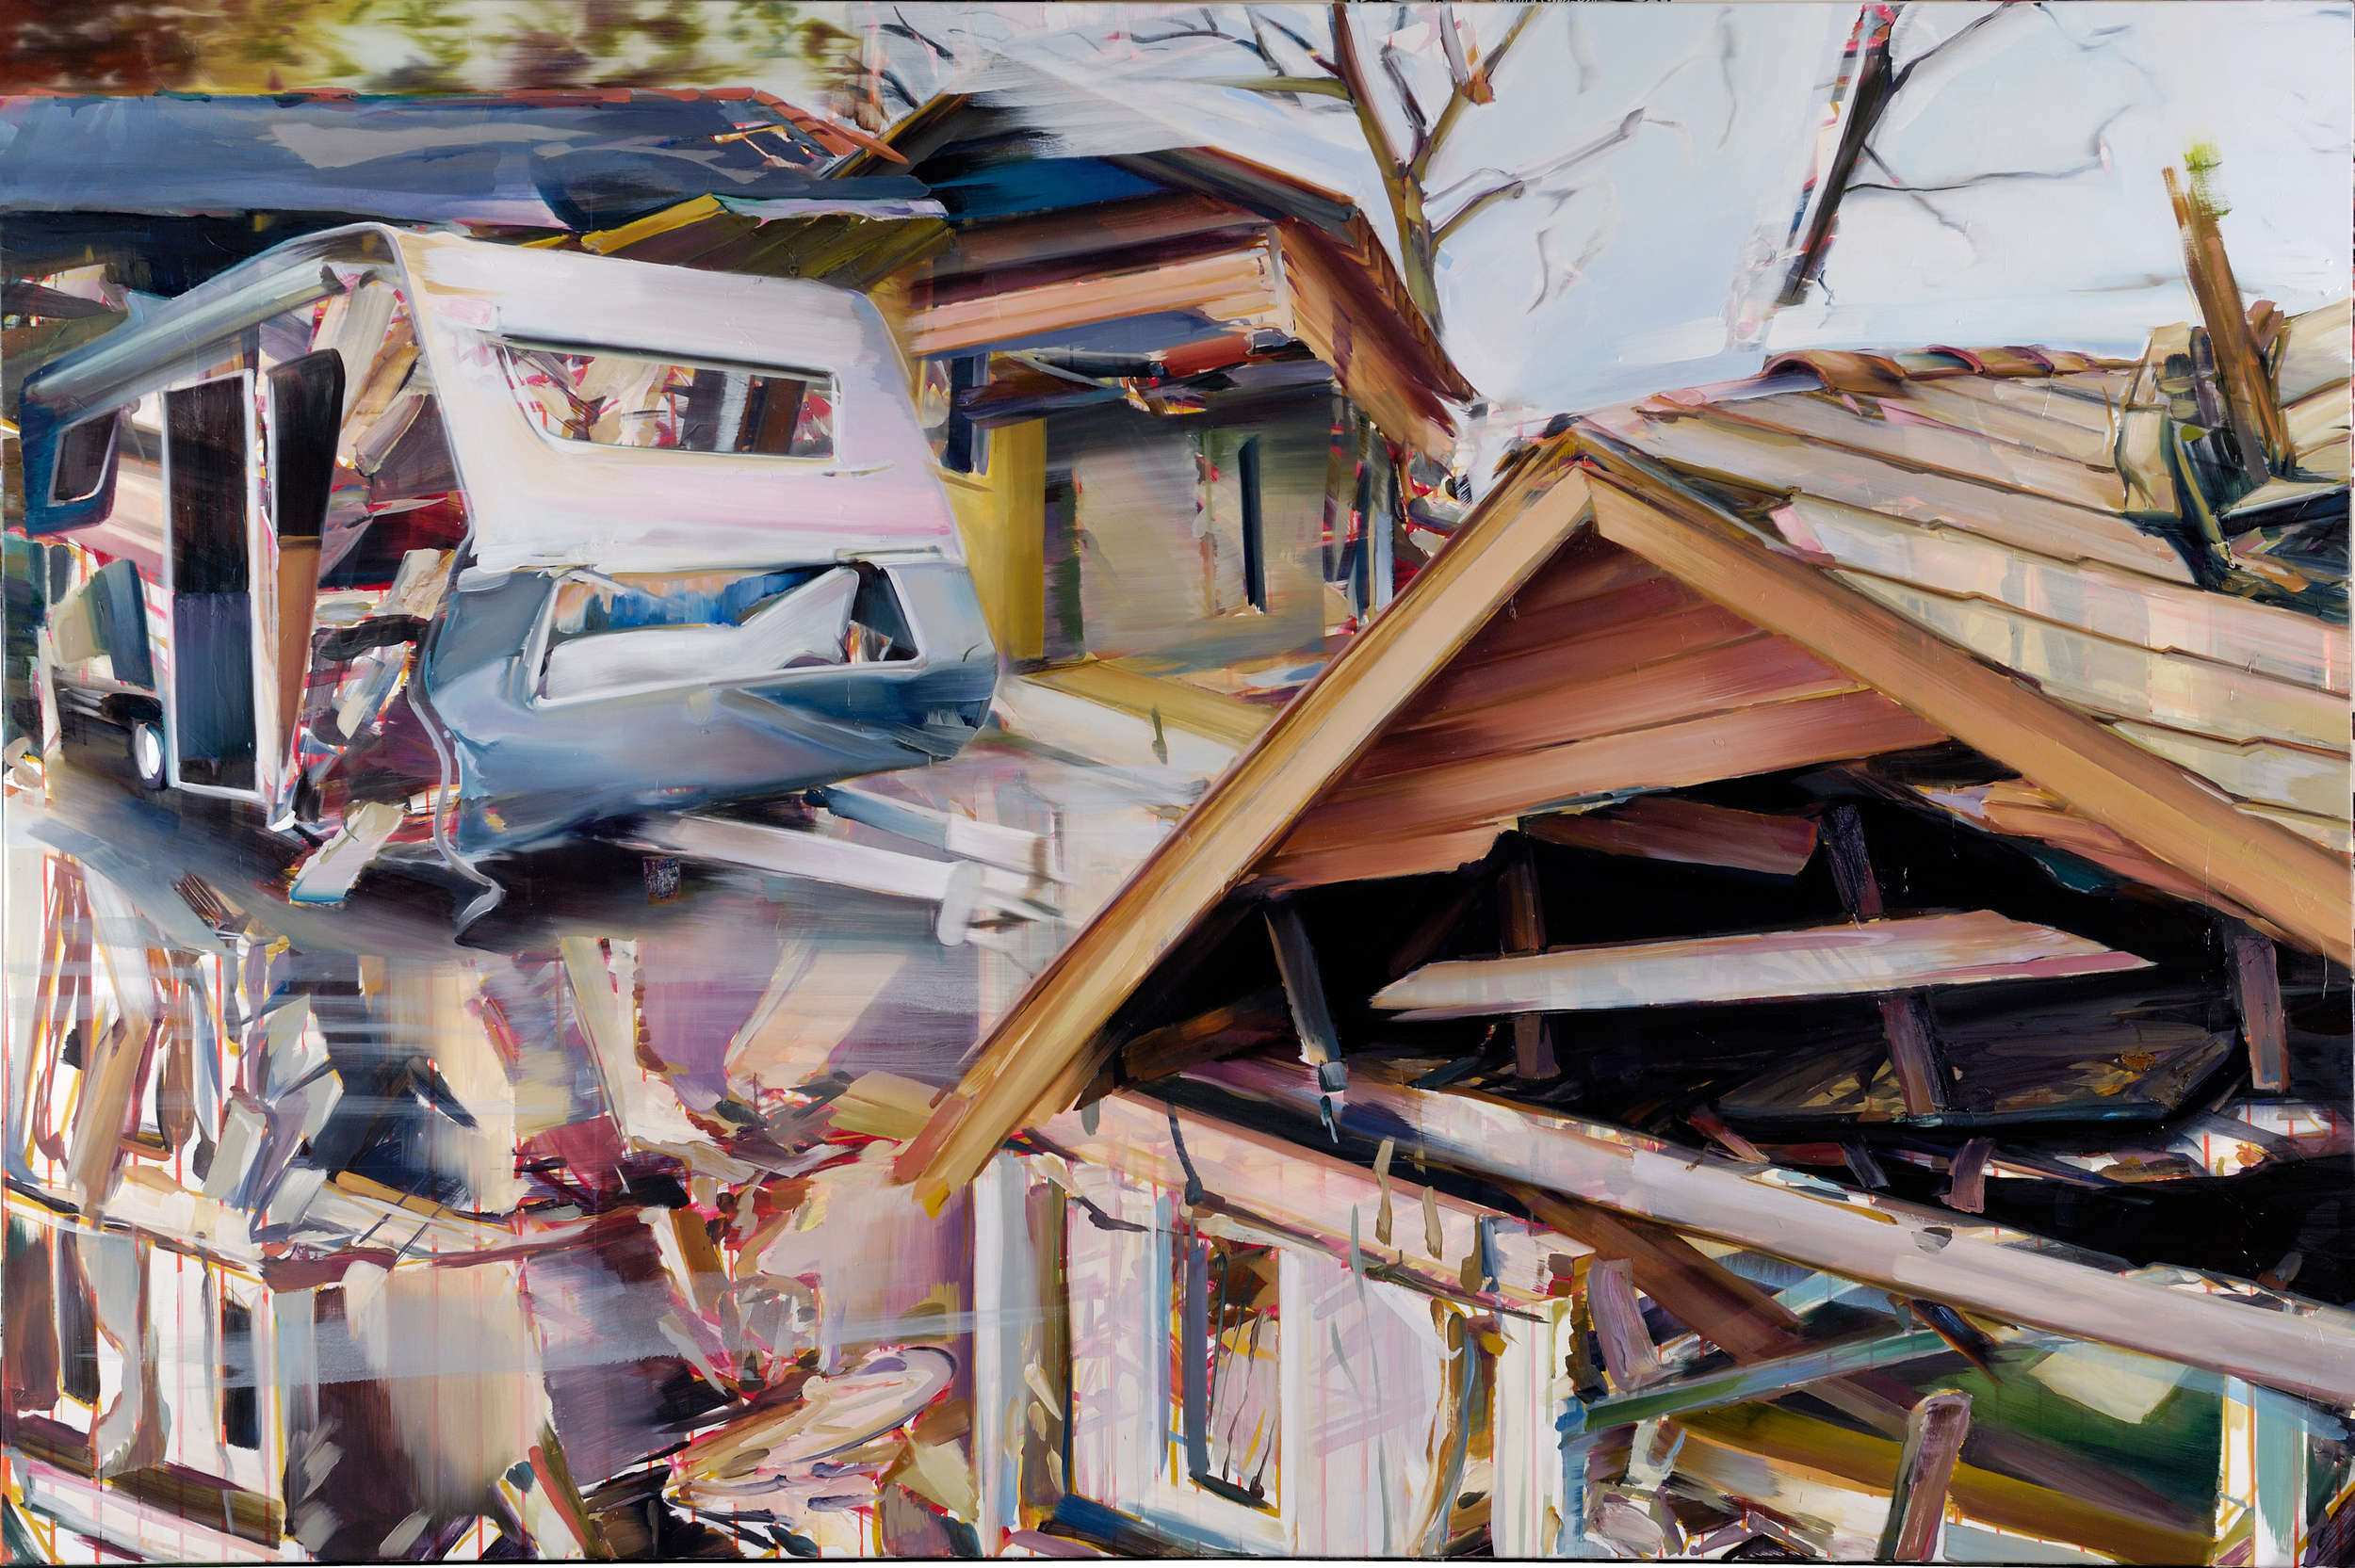 Untitled (The physical impossibility of being in two places at once) , 2009, oil on canvas, 200 x 300cm. Private collection, France